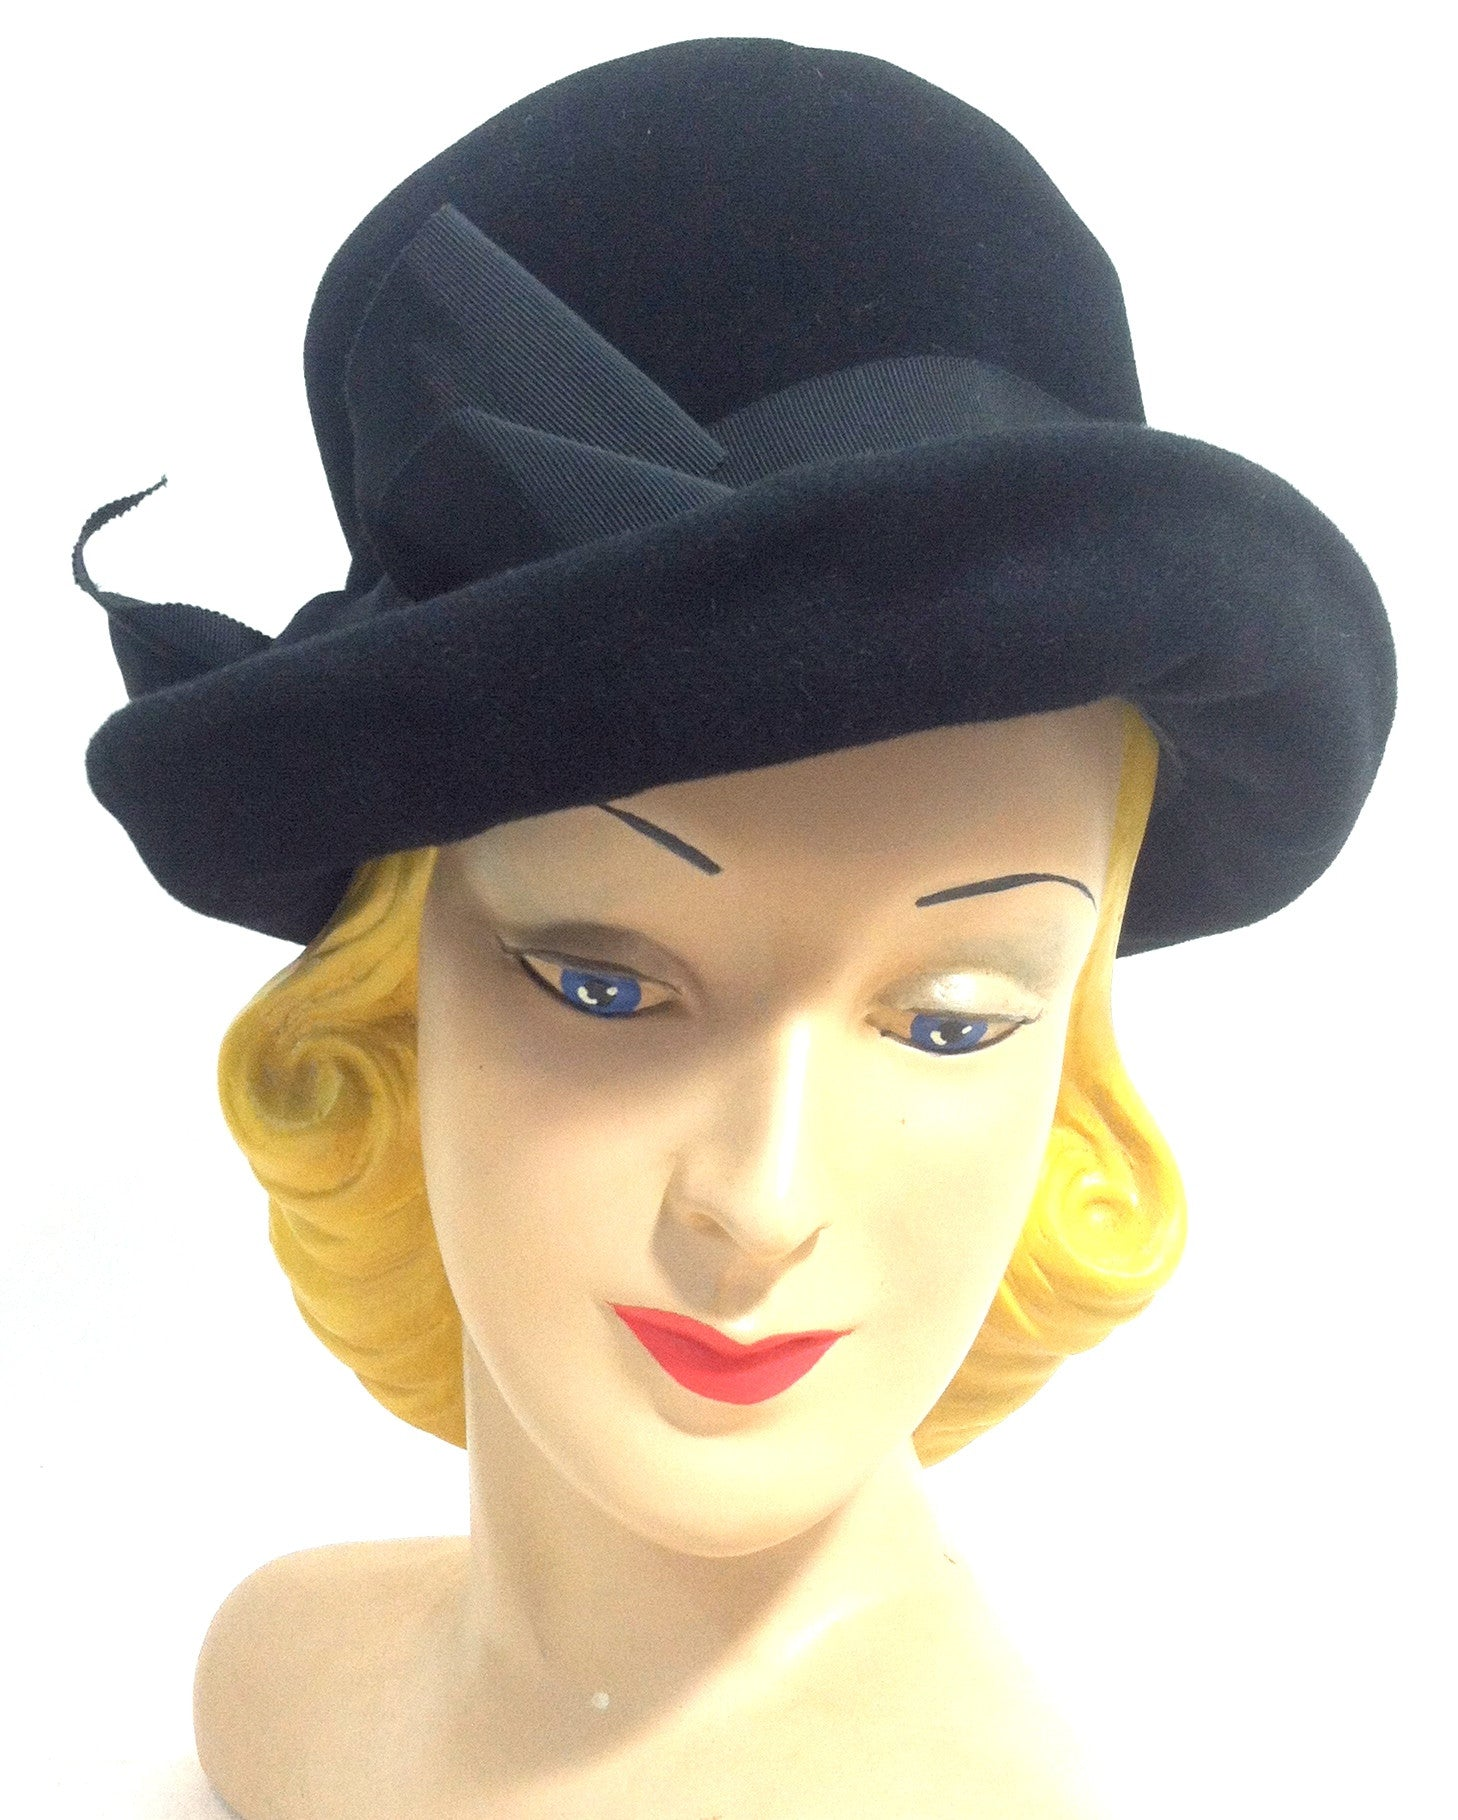 Soft Side Bowler Style Black Hat w/ Bow circa 1960s